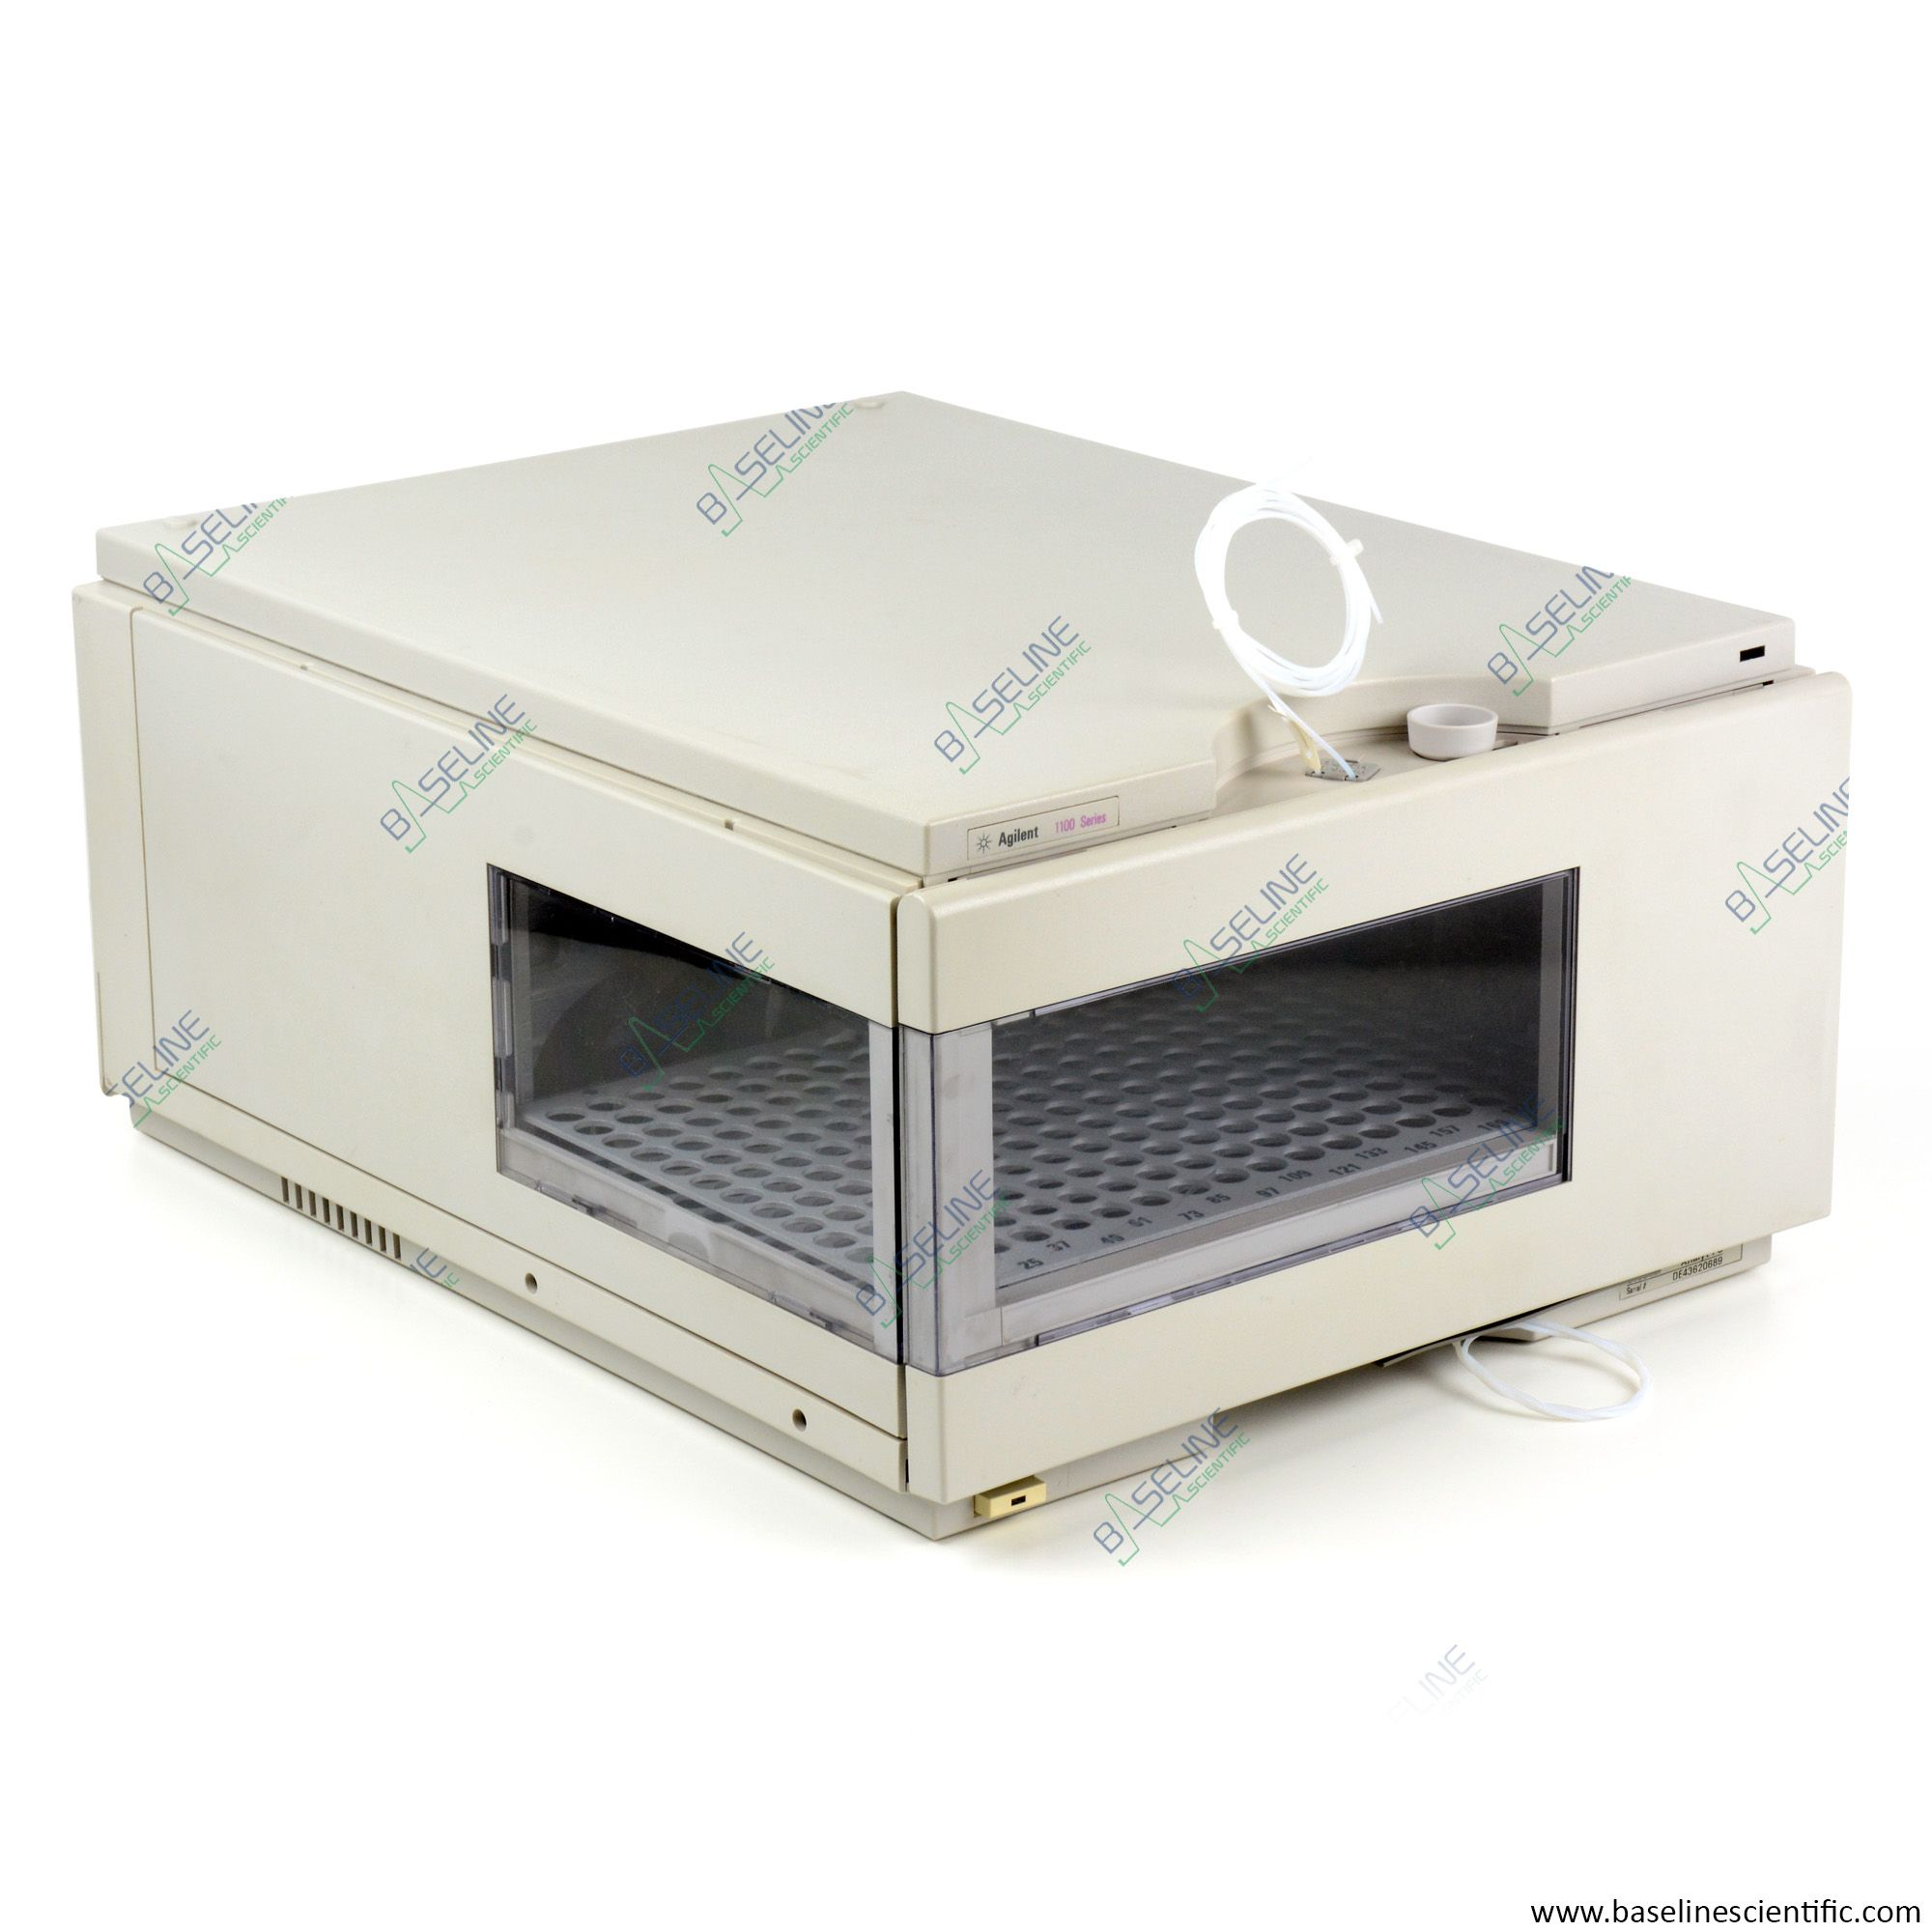 Refurbished Agilent HP 1100 G1364C Analytical Fraction Collector with ONE YEAR WARRANTY